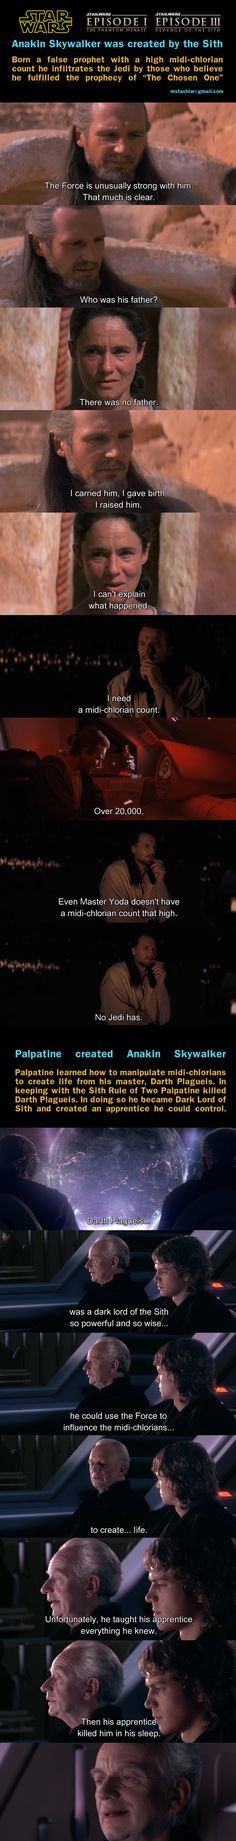 Anakin Skywalker was created by the Sith, A very interesting theory.